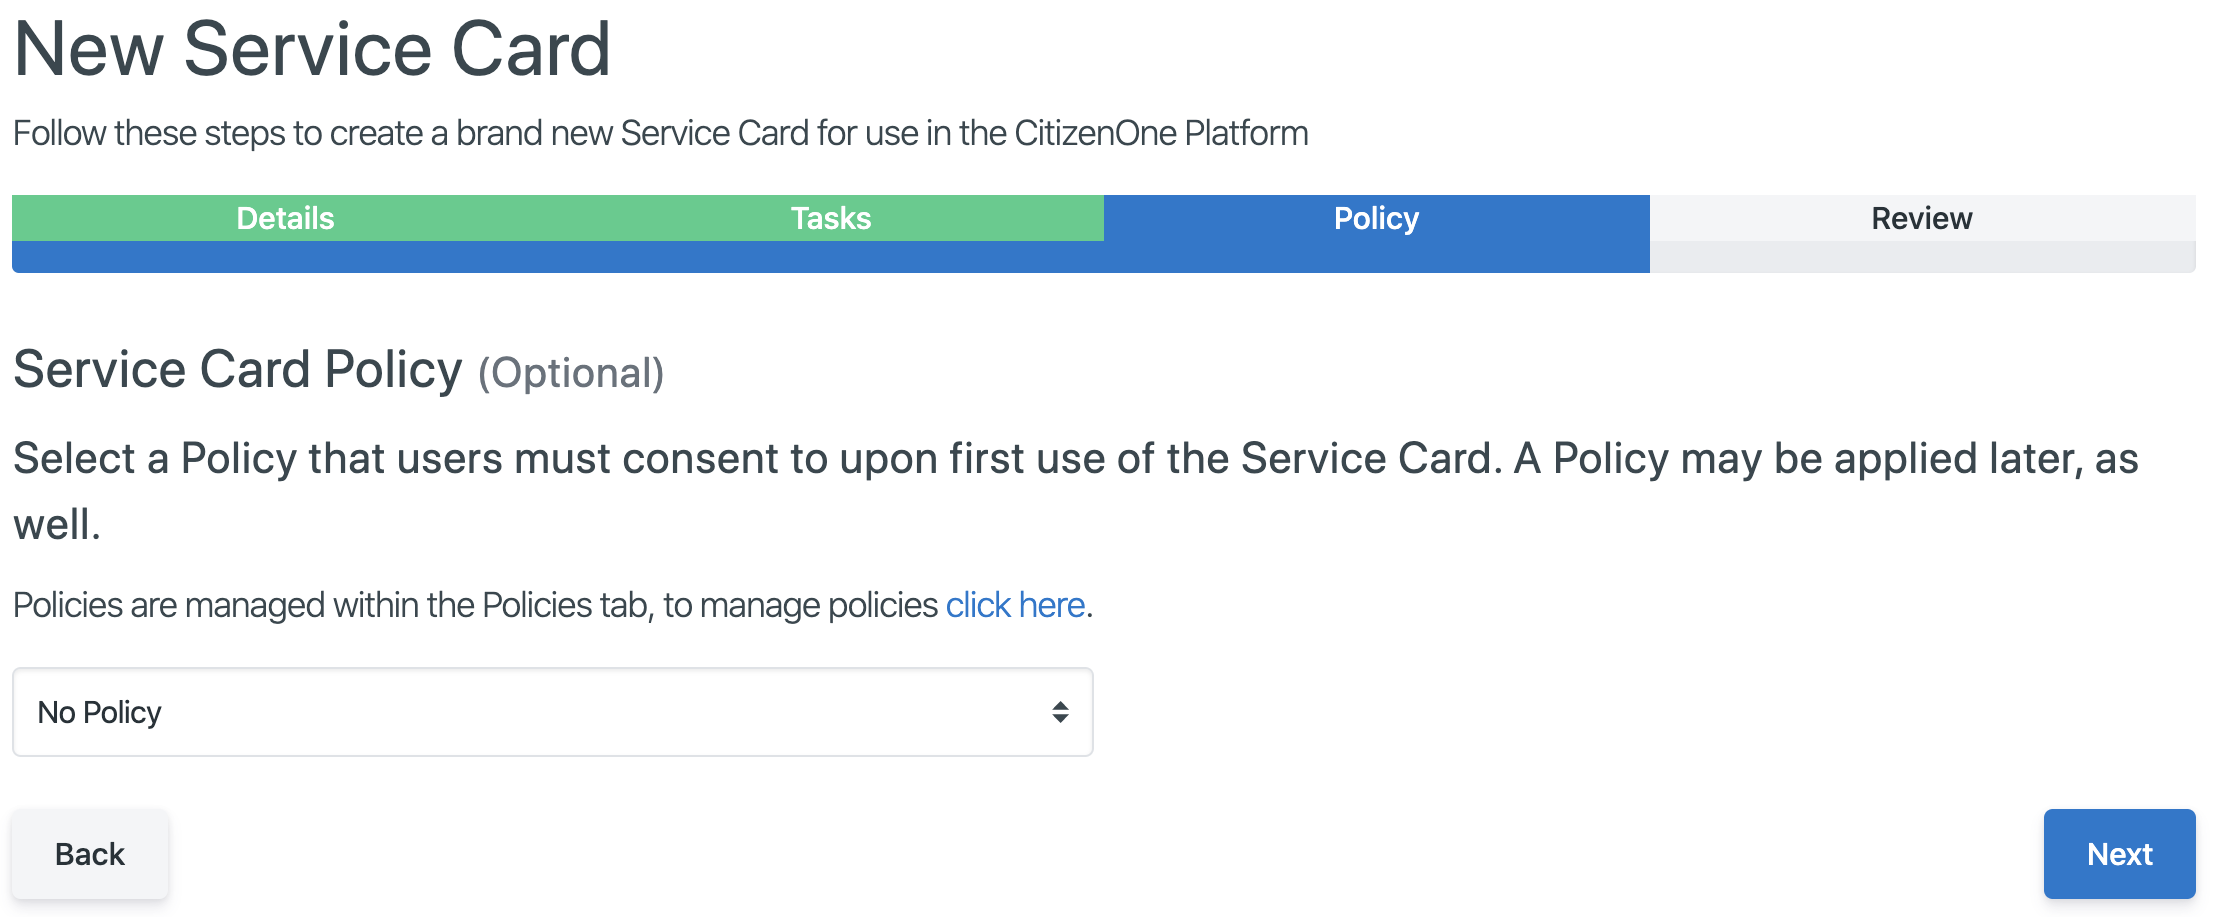 Setting a Policy on a Service Card